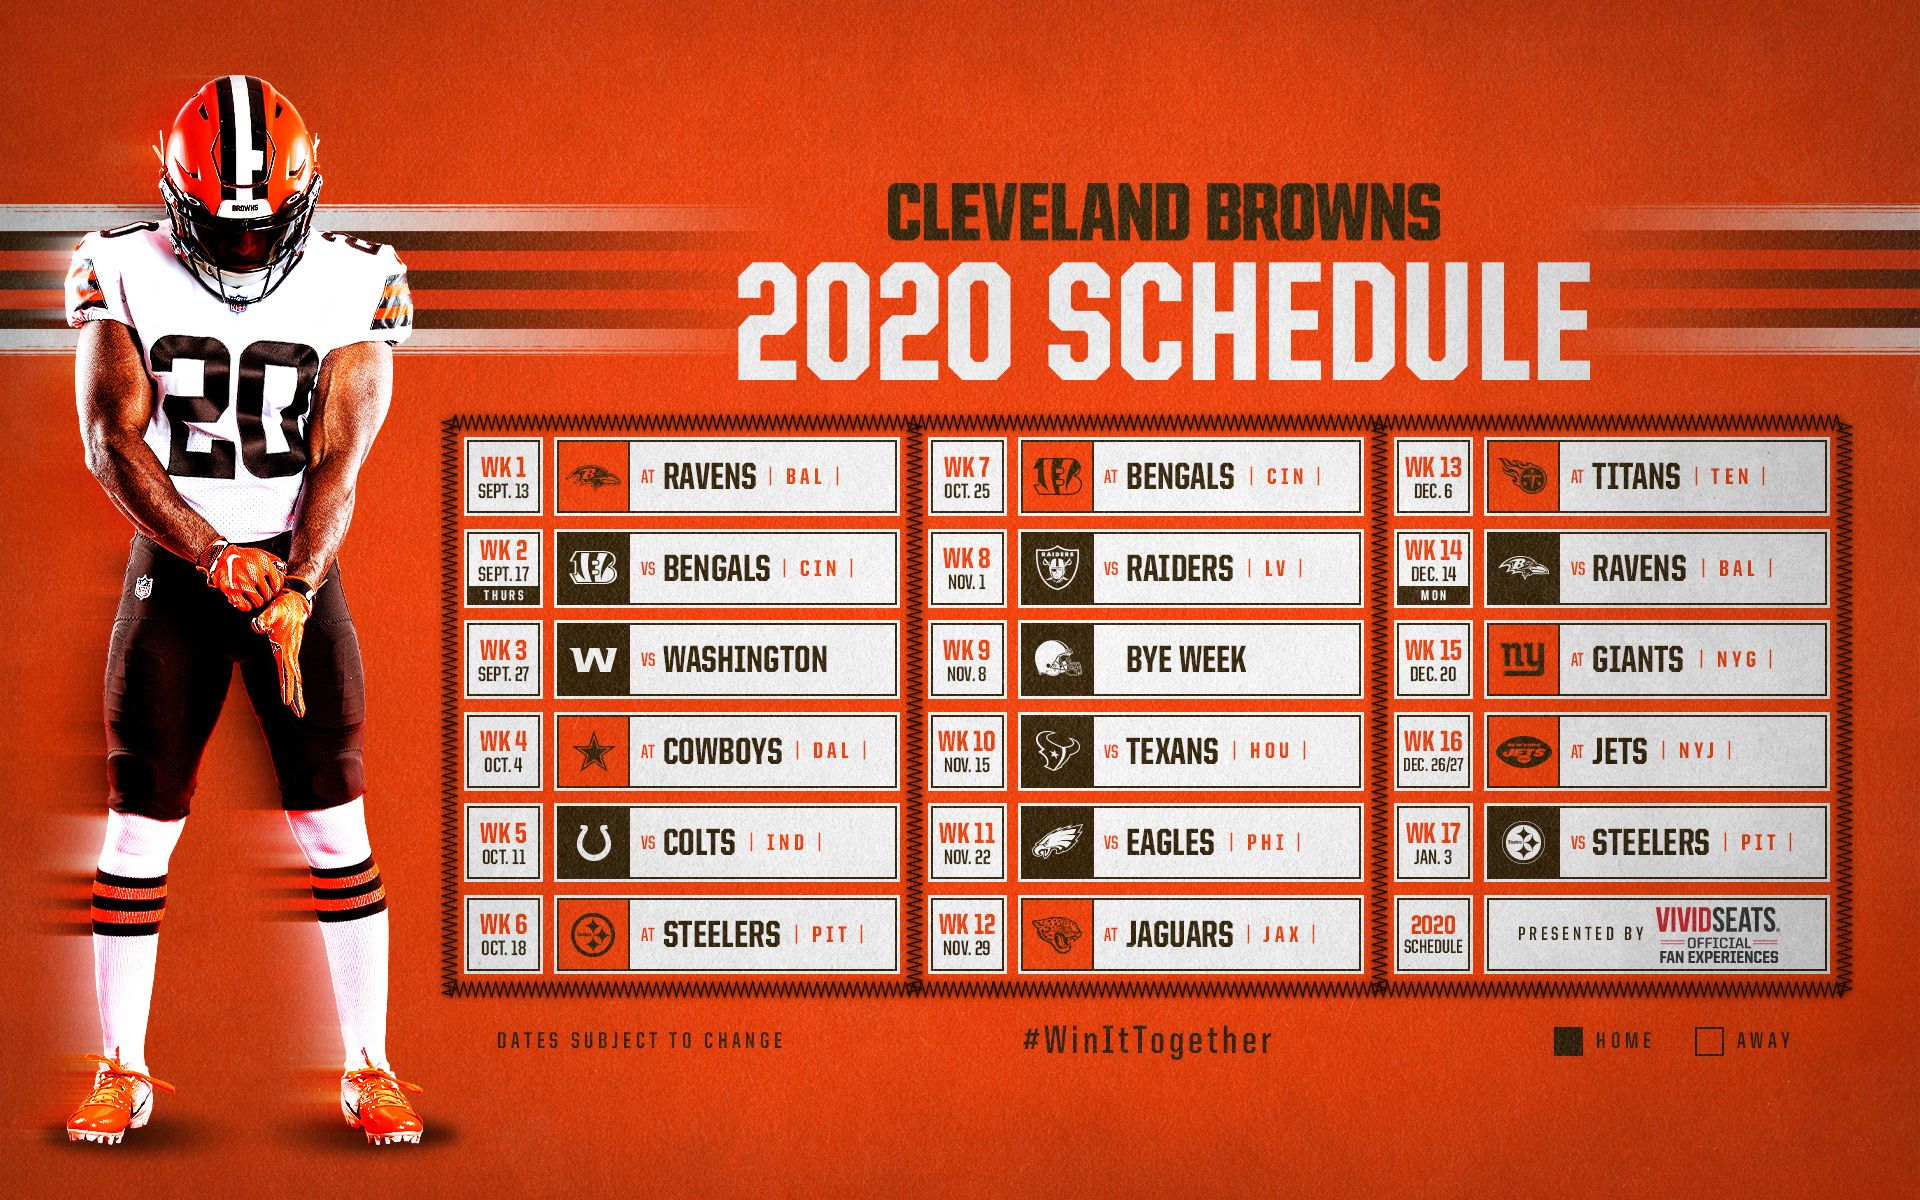 Browns Schedule Downloads Cleveland Browns Clevelandbrowns Com